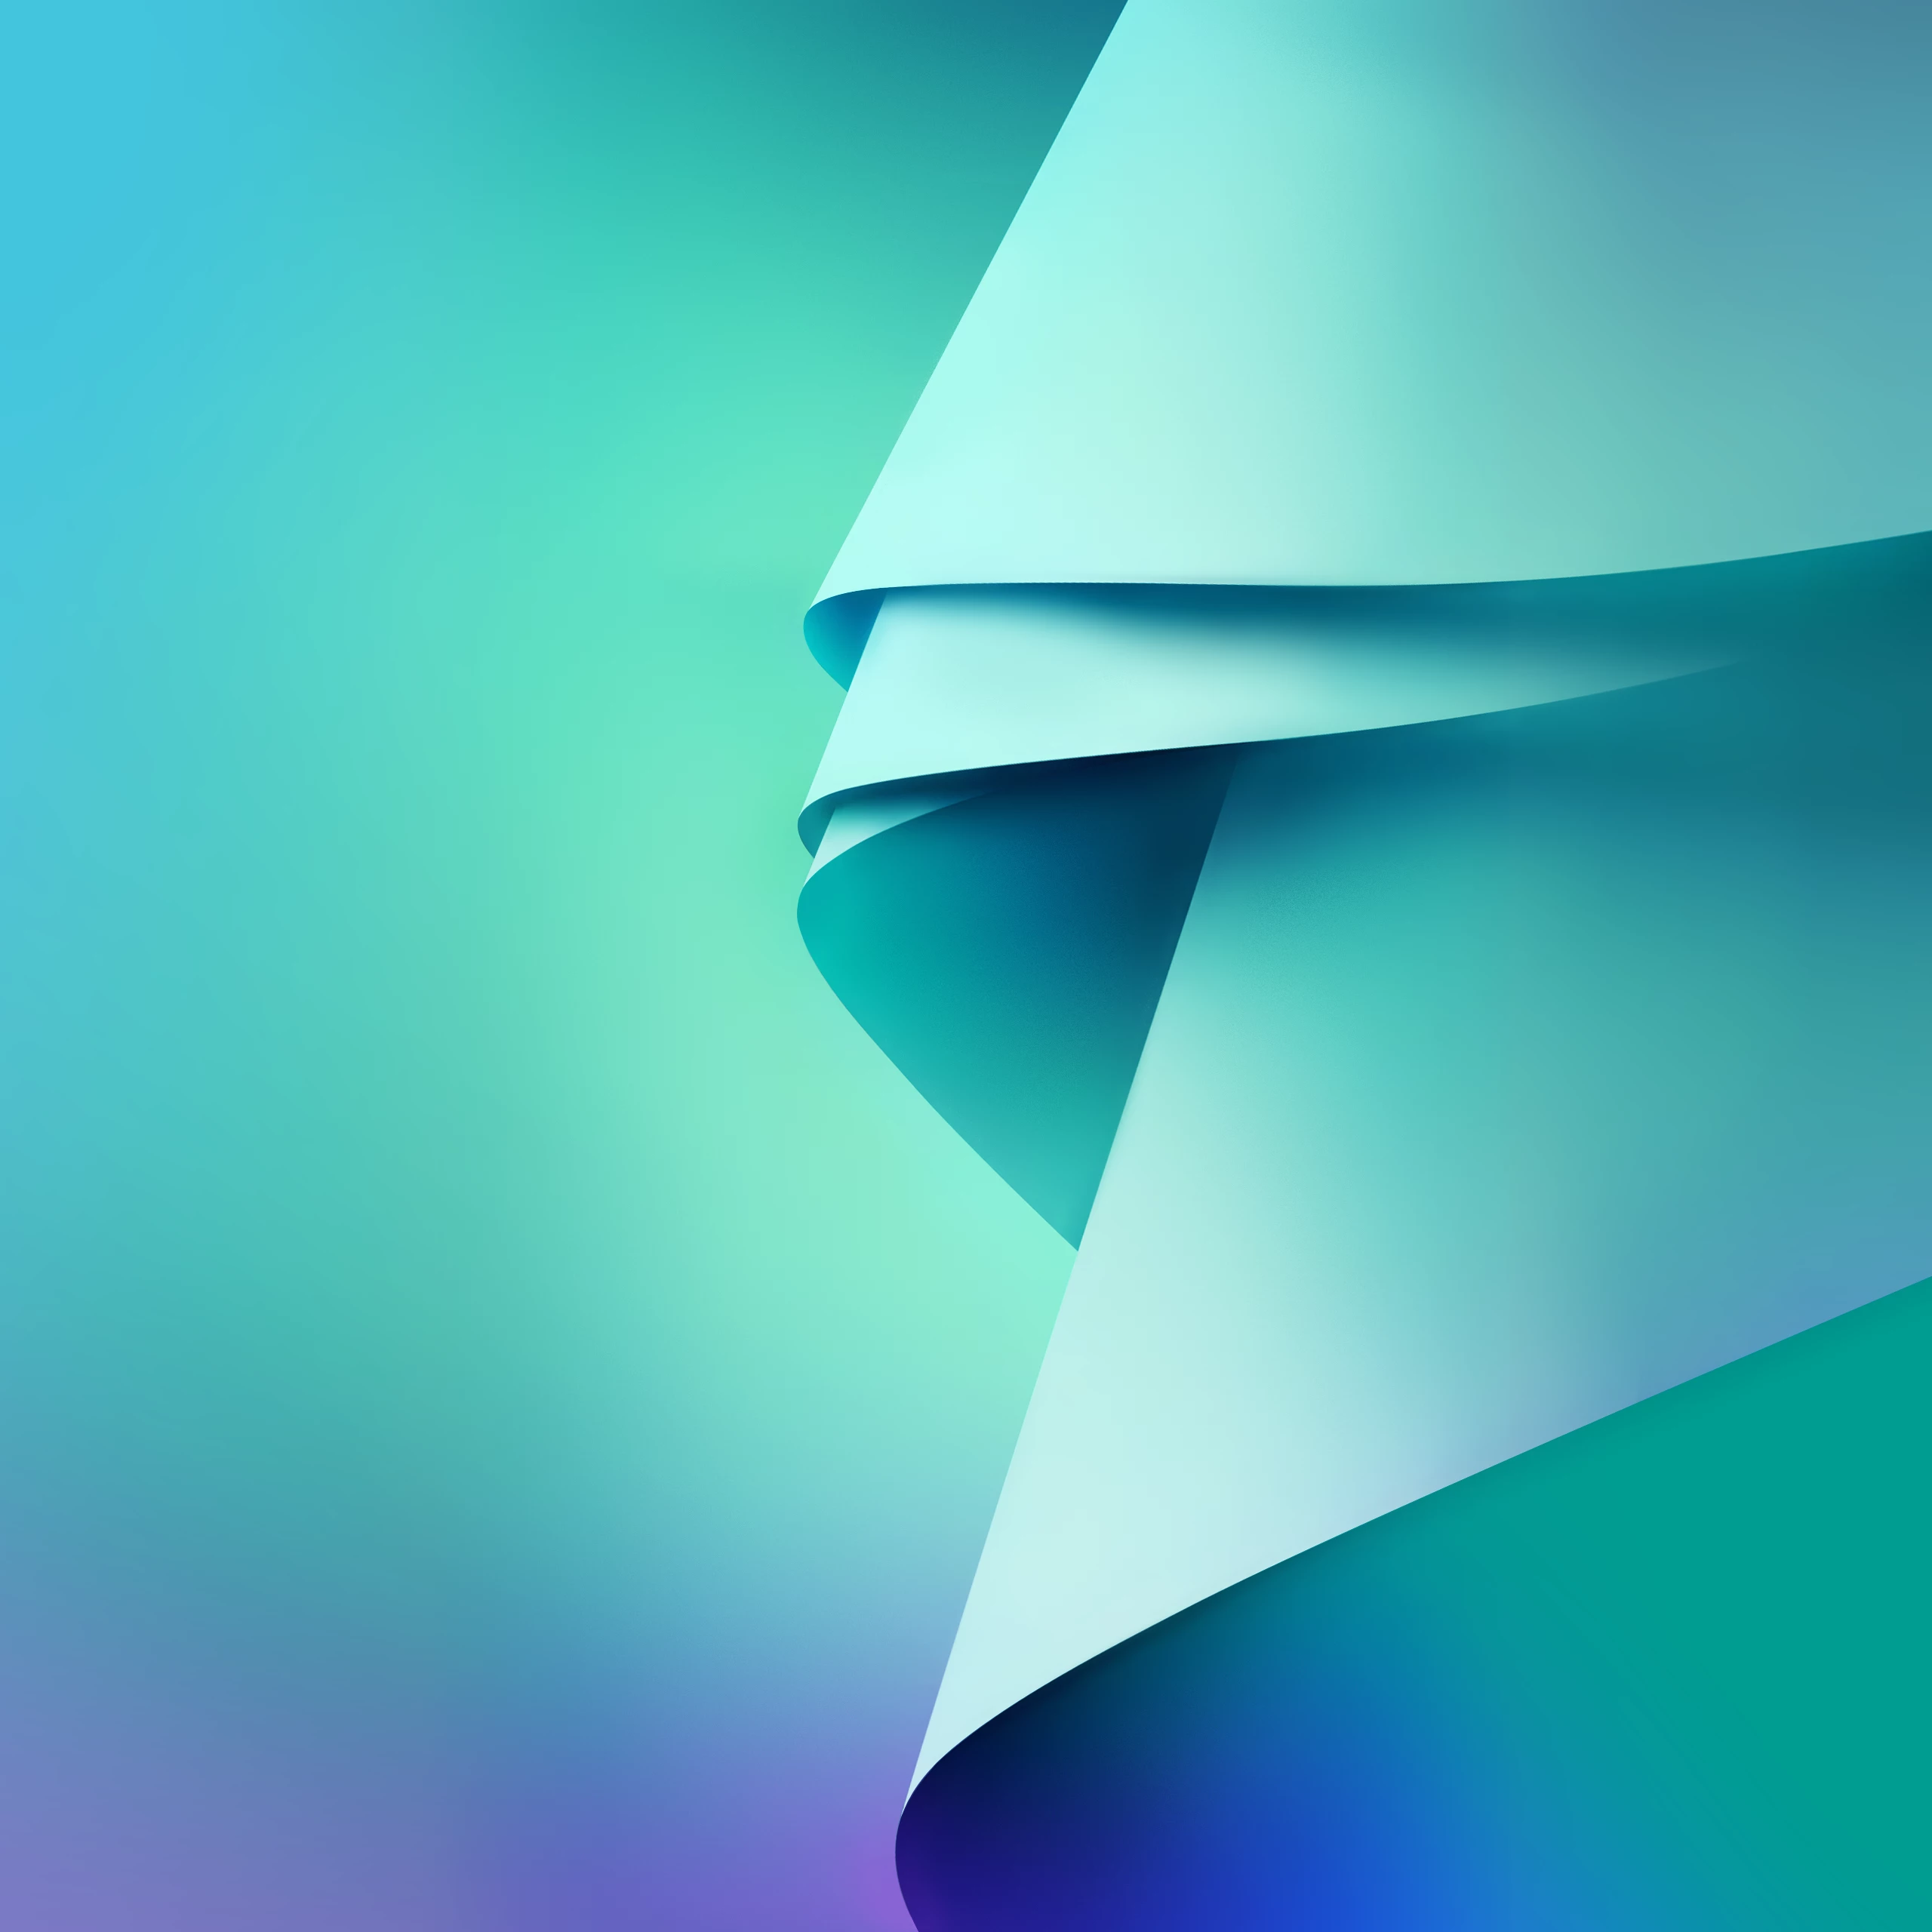 Samsung Galaxy Note 5 Stock Wallpapers 4 2560 x 2560